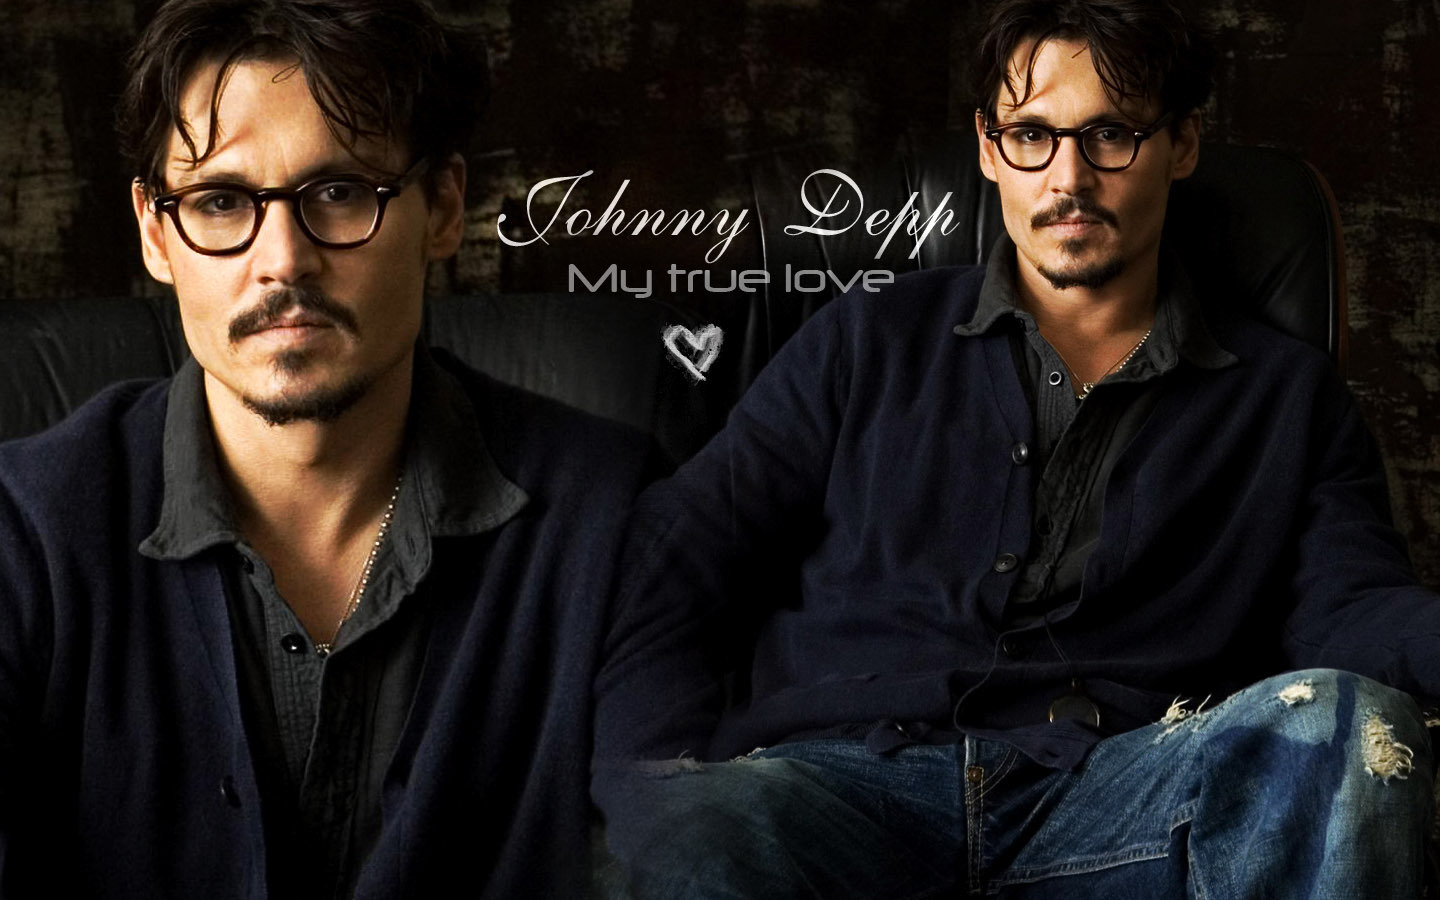 http://2.bp.blogspot.com/-RS9uOo3f60s/T_0n5fG5XgI/AAAAAAAAAVY/n6y_PHxe9Fs/s1600/Johnny-Depp-Wallpapers-for-Desktop-4.jpg